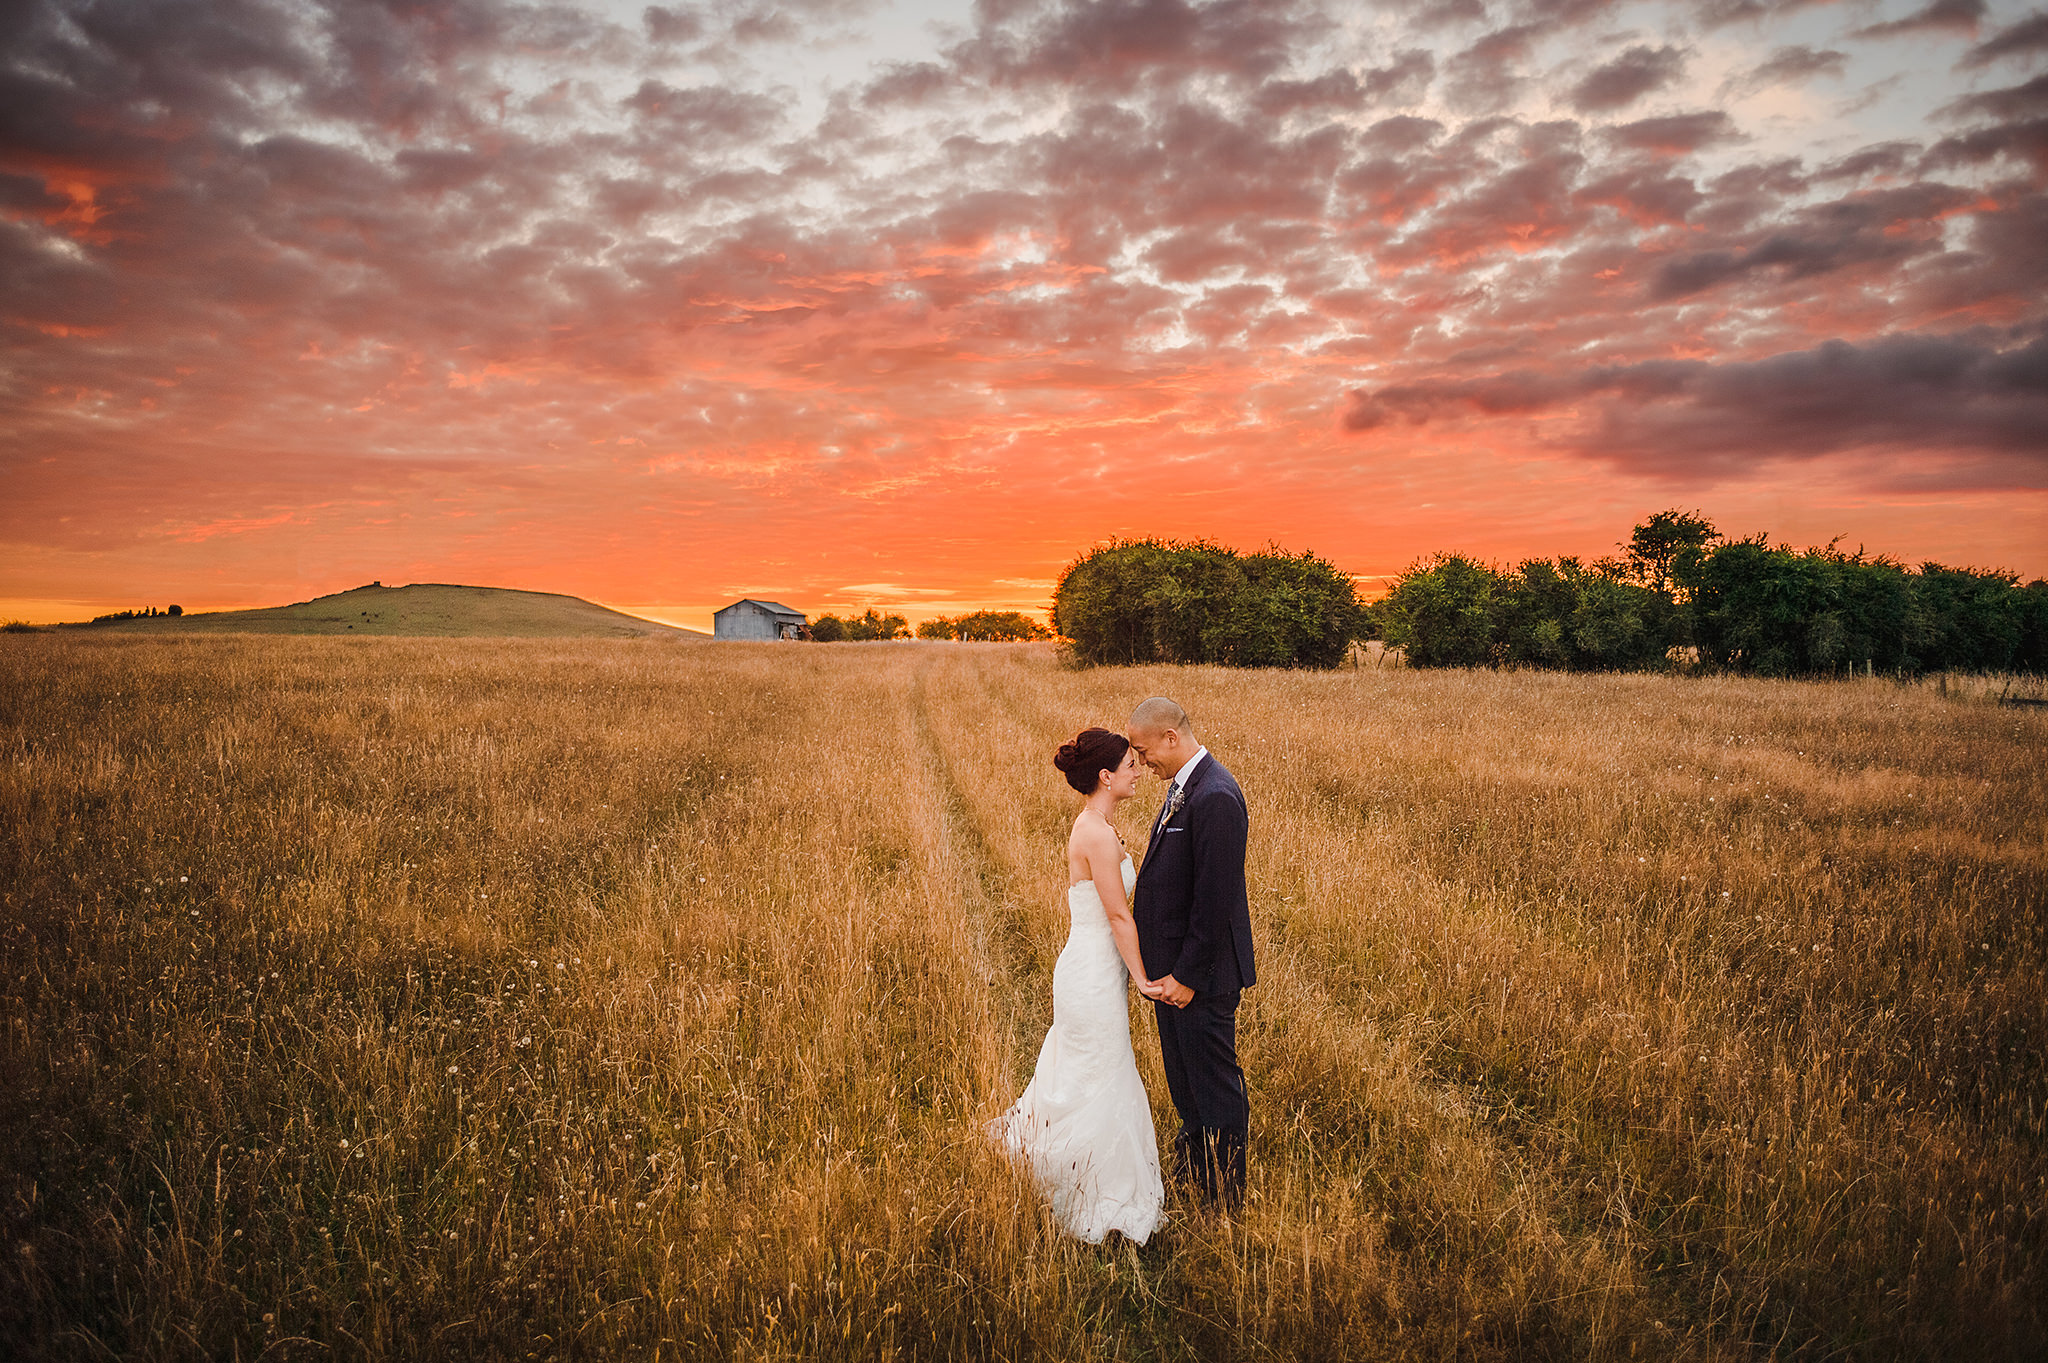 29 Bombay Auckland wedding bride groom sunset in field beautiful amazing long grass.JPG